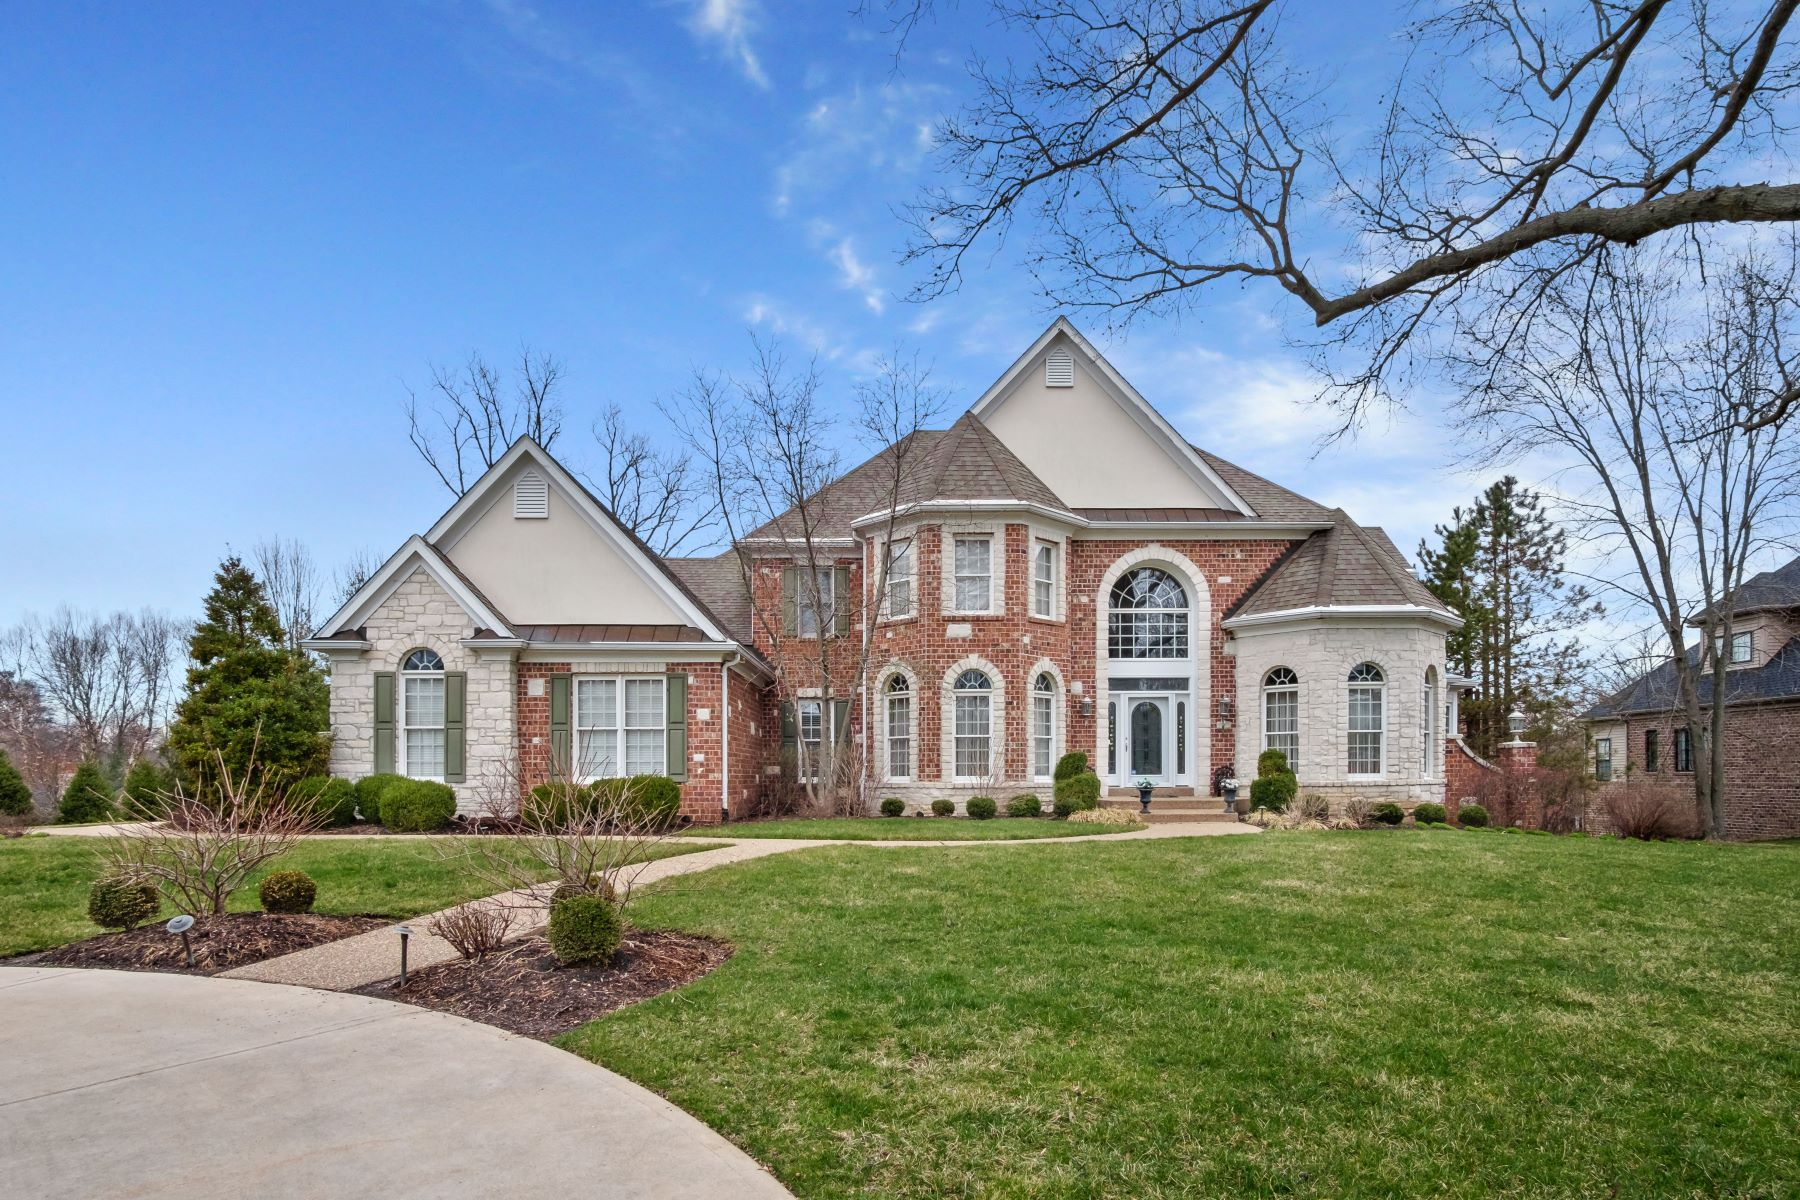 Single Family Homes for Sale at Prestigious & Spacious Home Nestled In The Heart of Frontenac 11415 Clayton Road Frontenac, Missouri 63131 United States